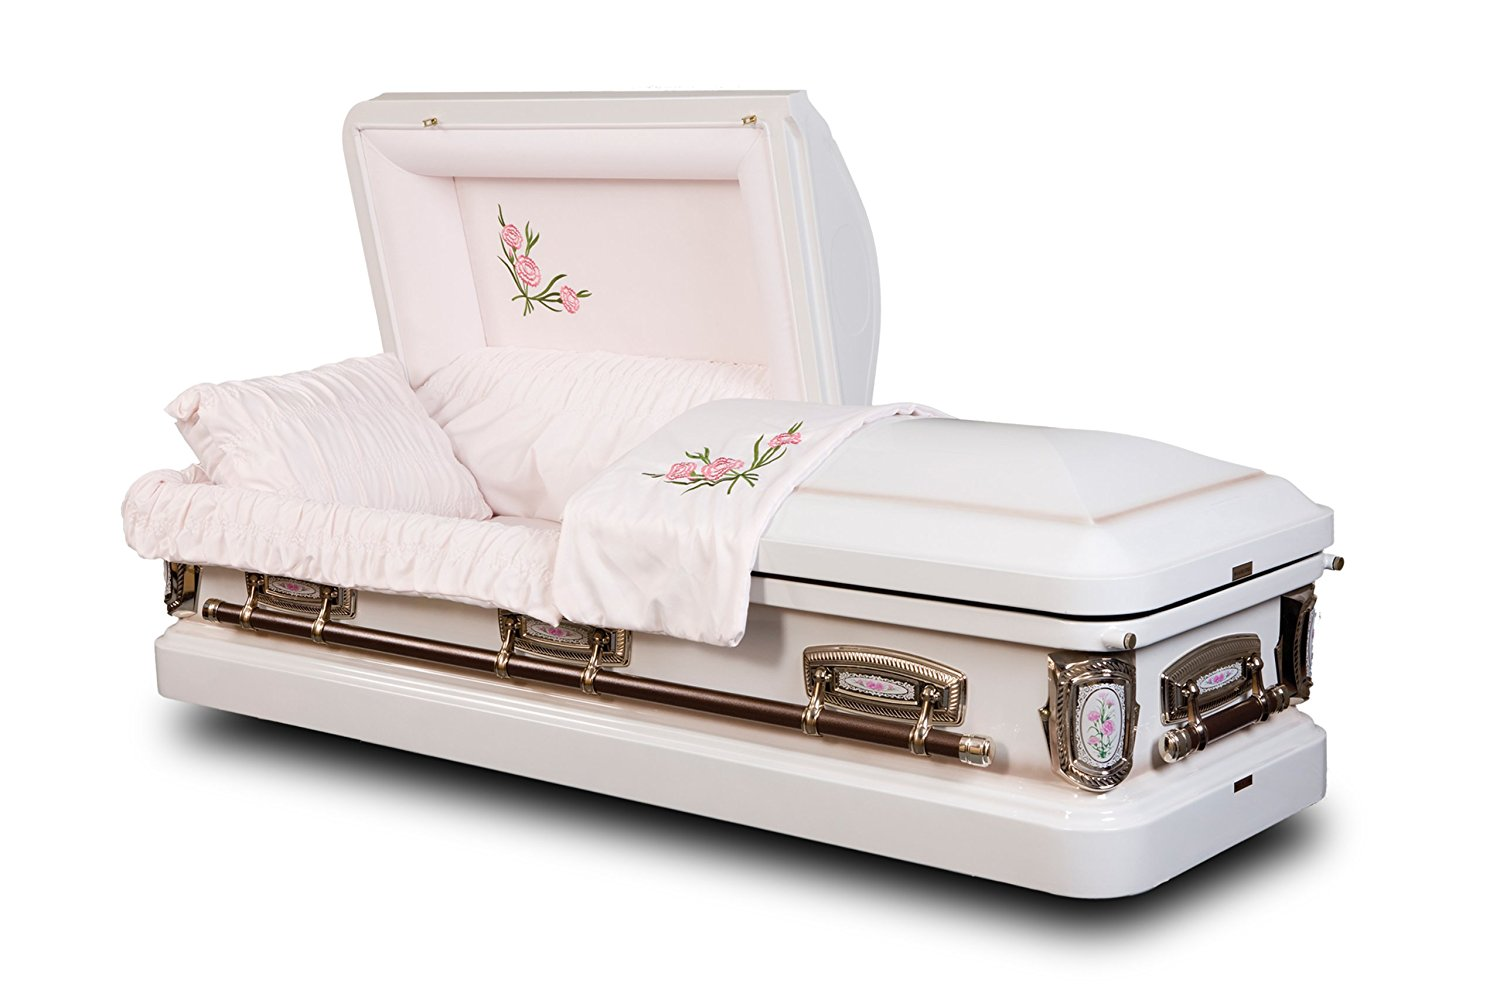 White Casket with Flowers from Star Legacy